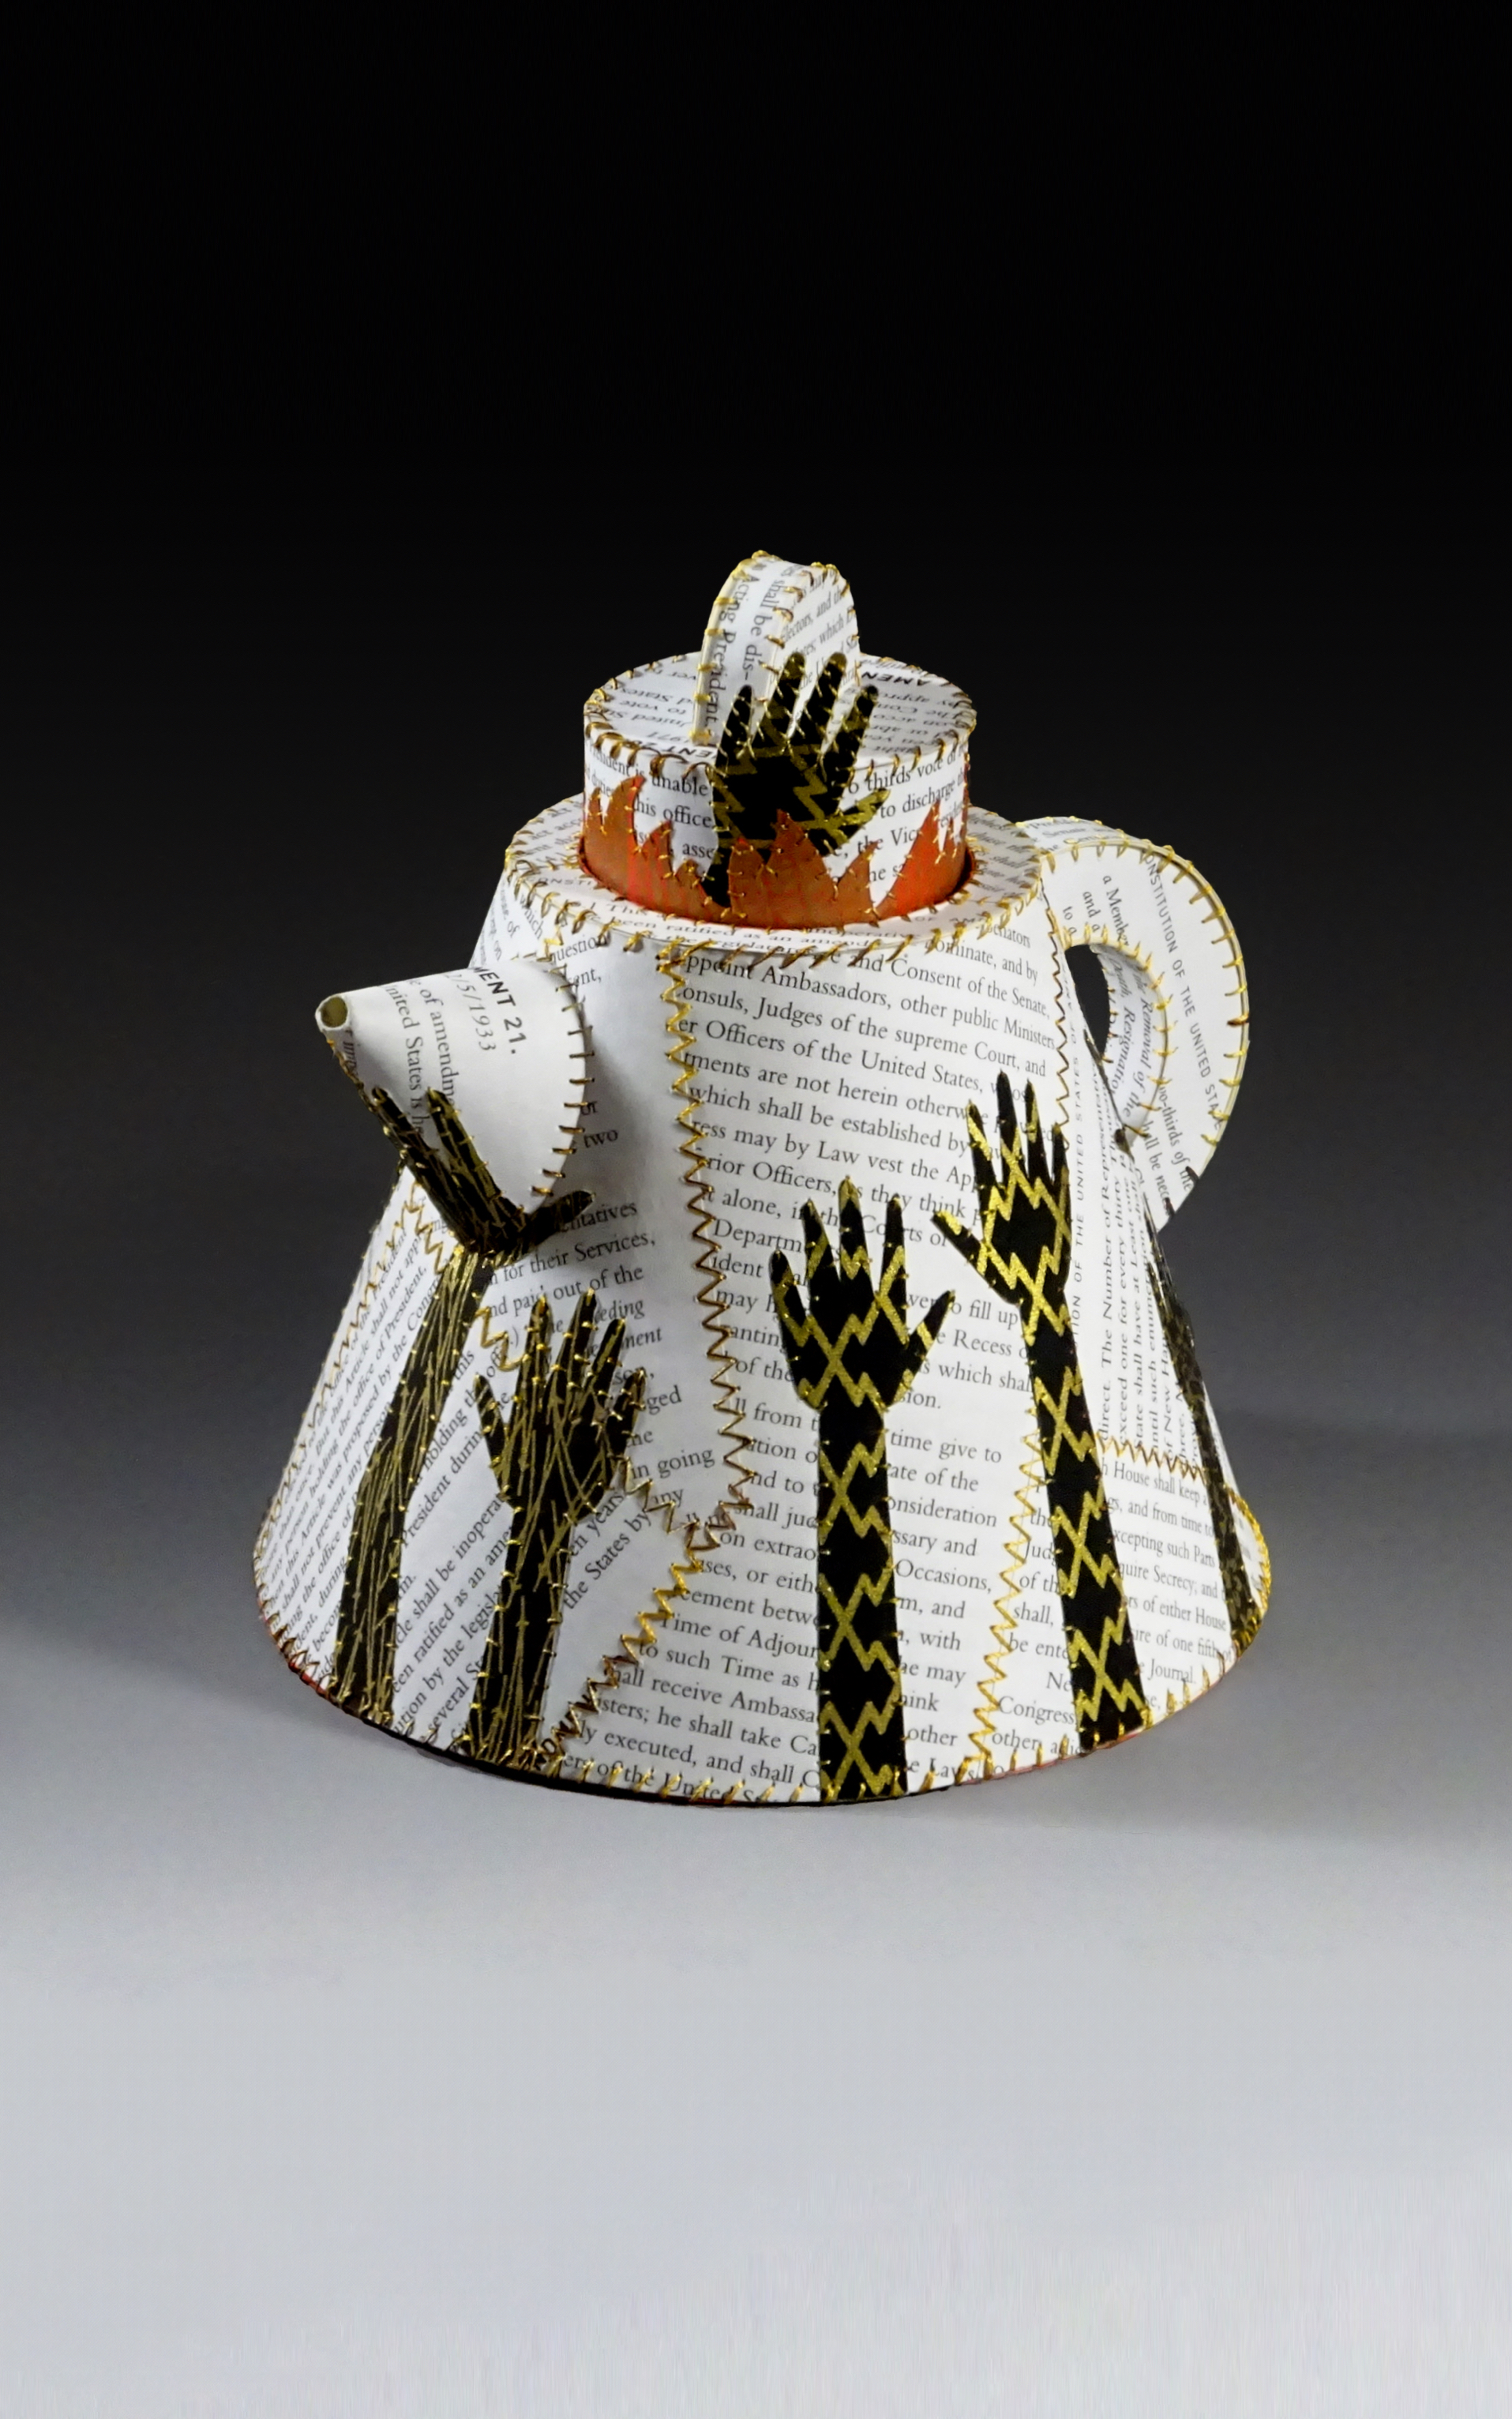 Sculpted teapot with printed material and decorated with up-stretched black hands